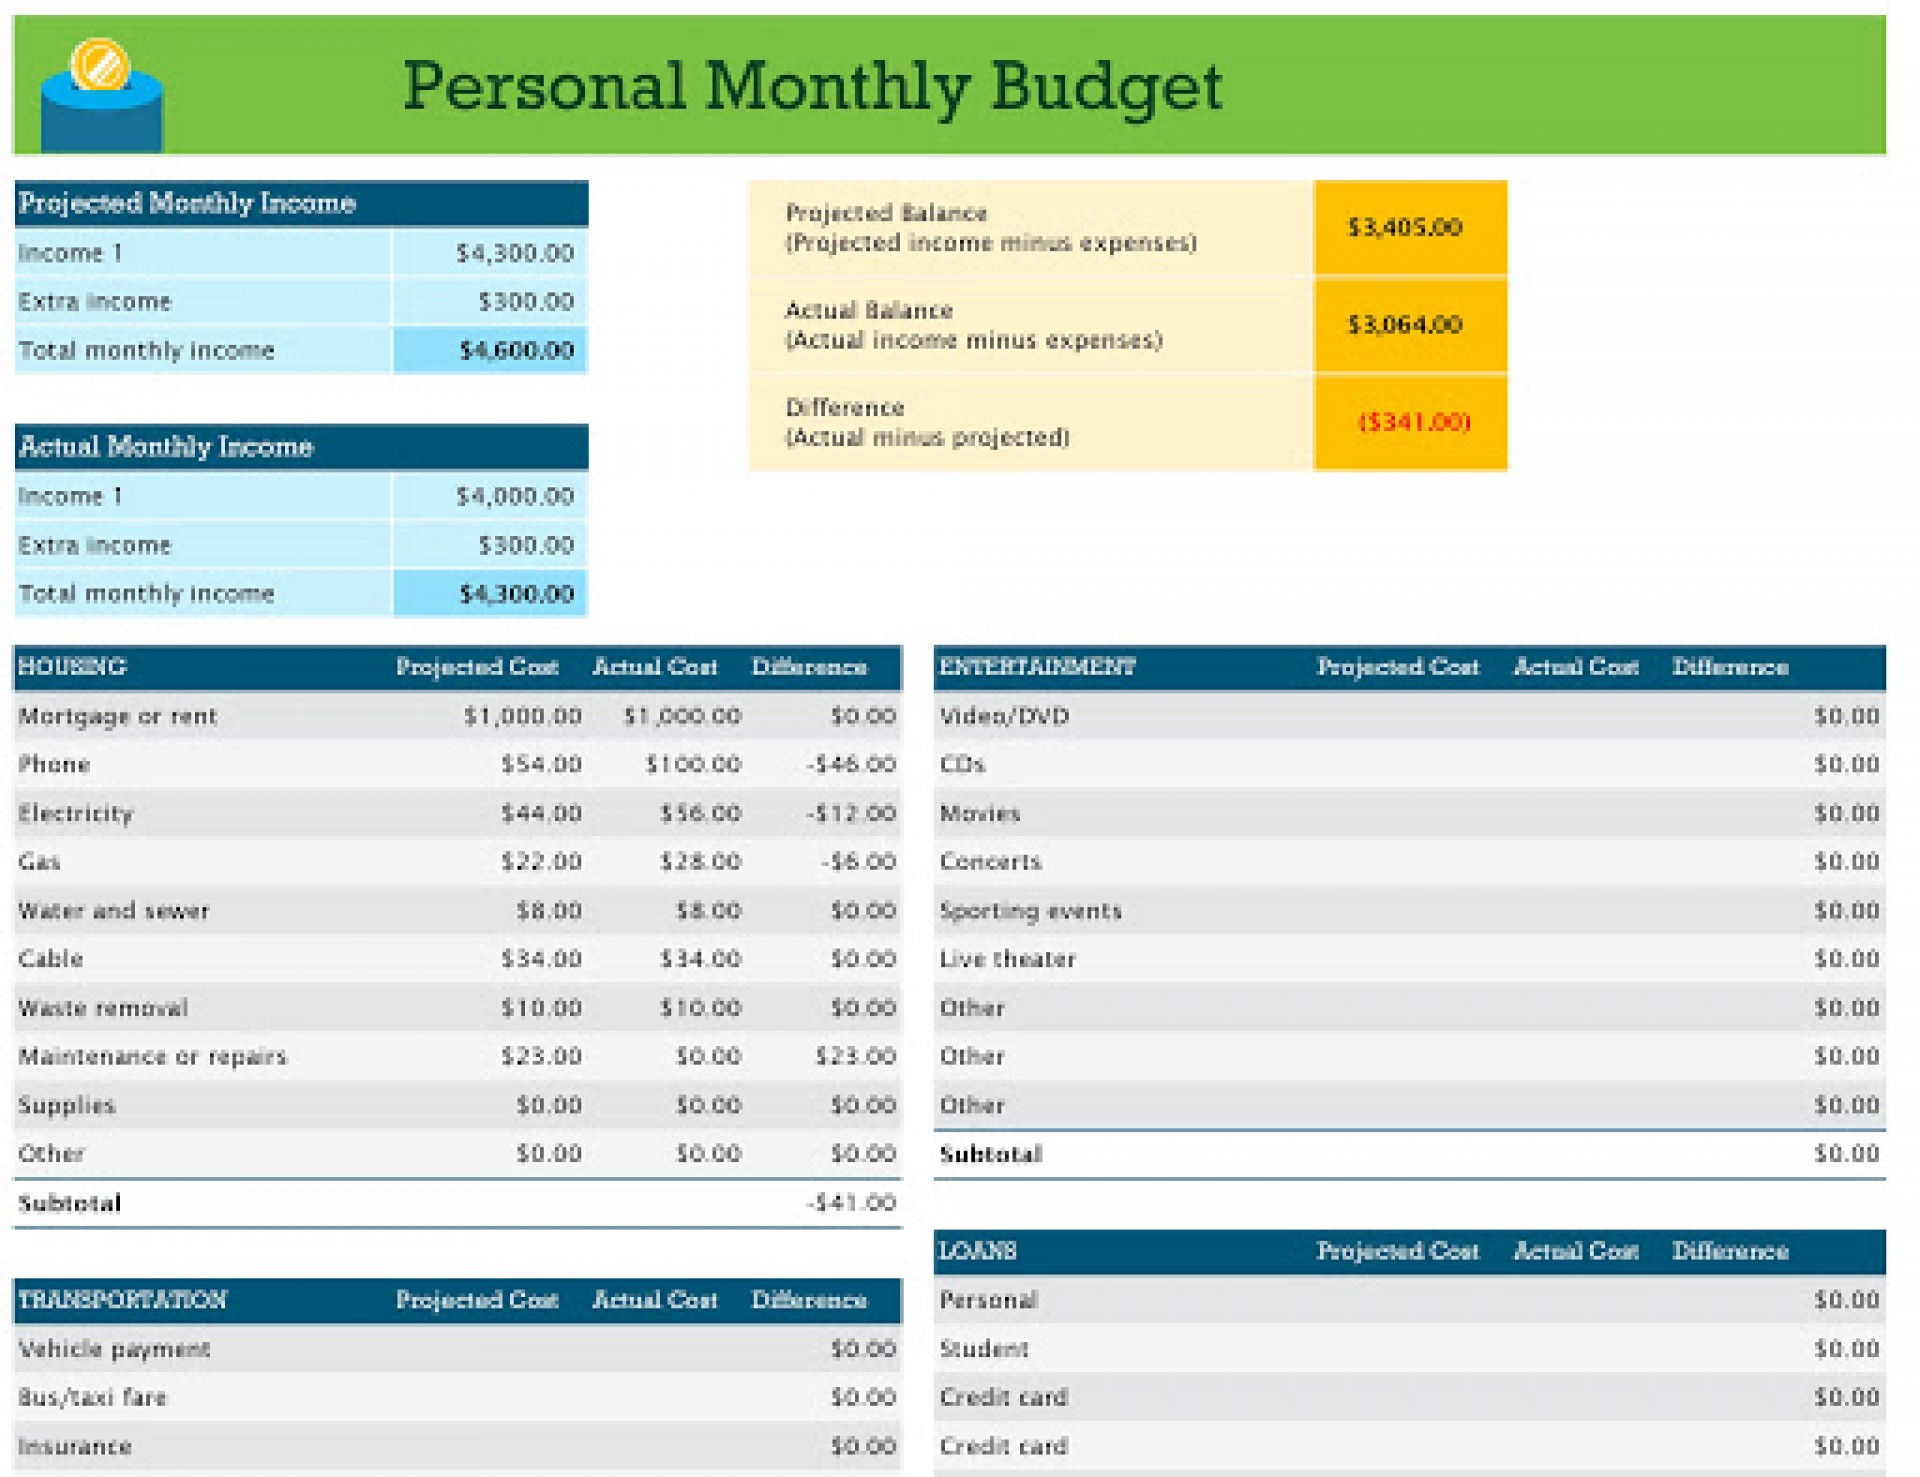 009 Unbelievable Budget Template In Excel High Resolution  Layout 20131920